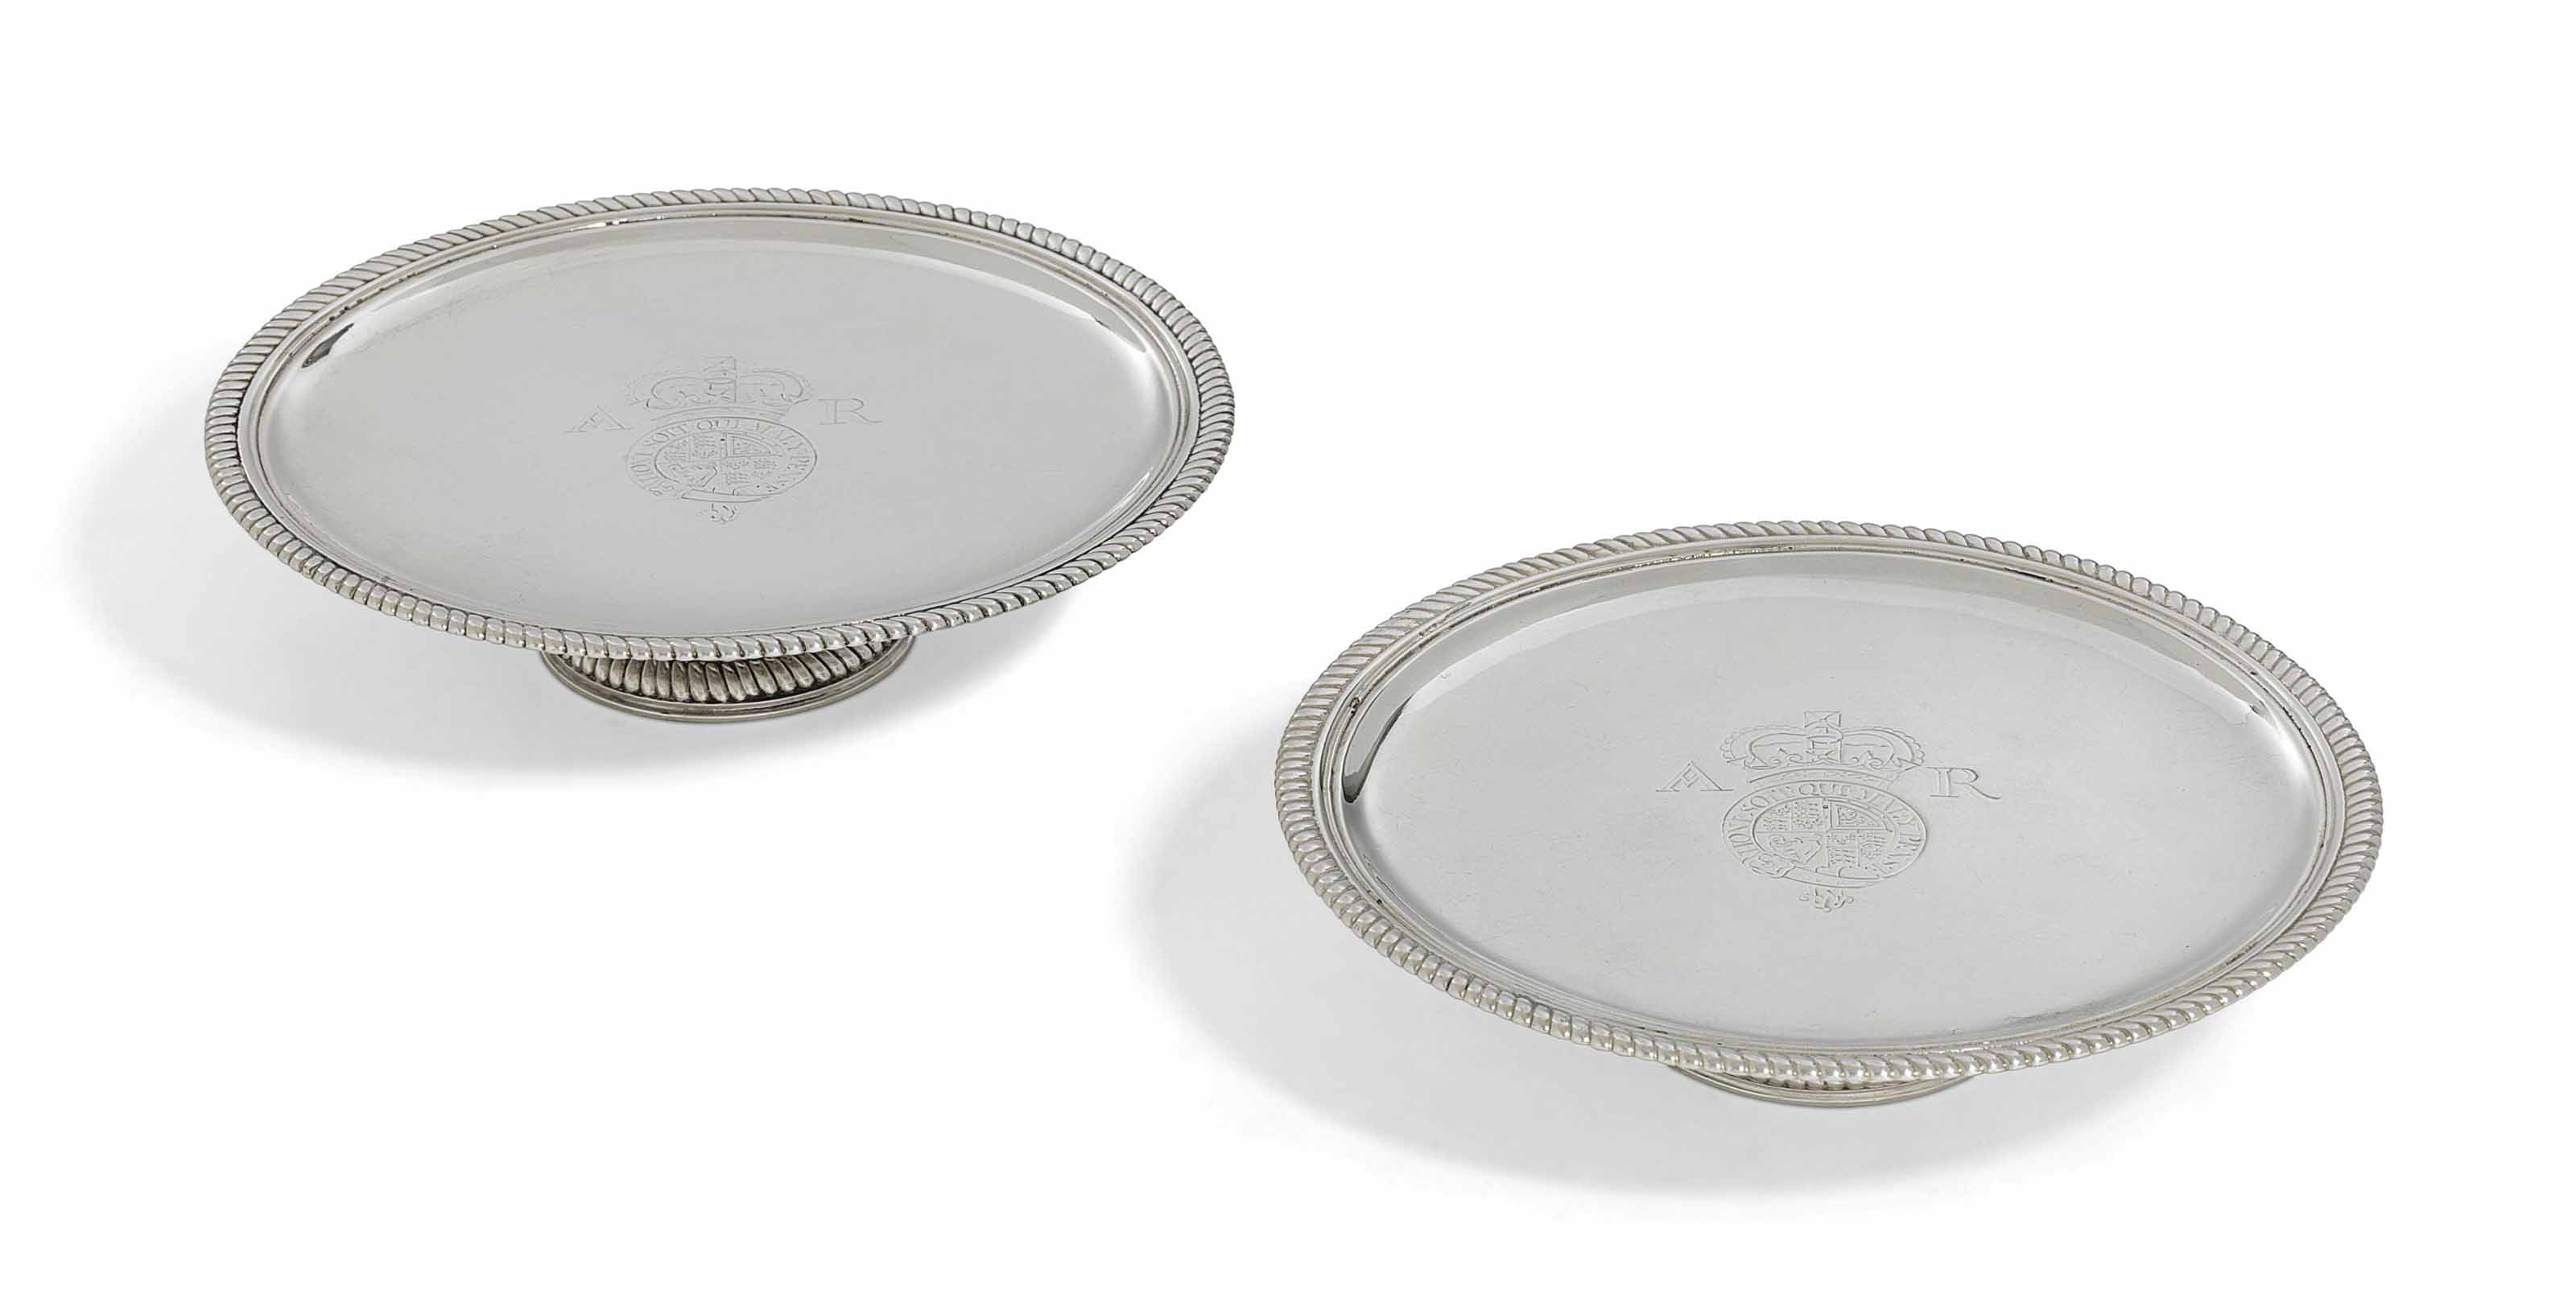 A PAIR OF GEORGE II SILVER TAZZE FROM THE SPEAKER SMITH SERVICE